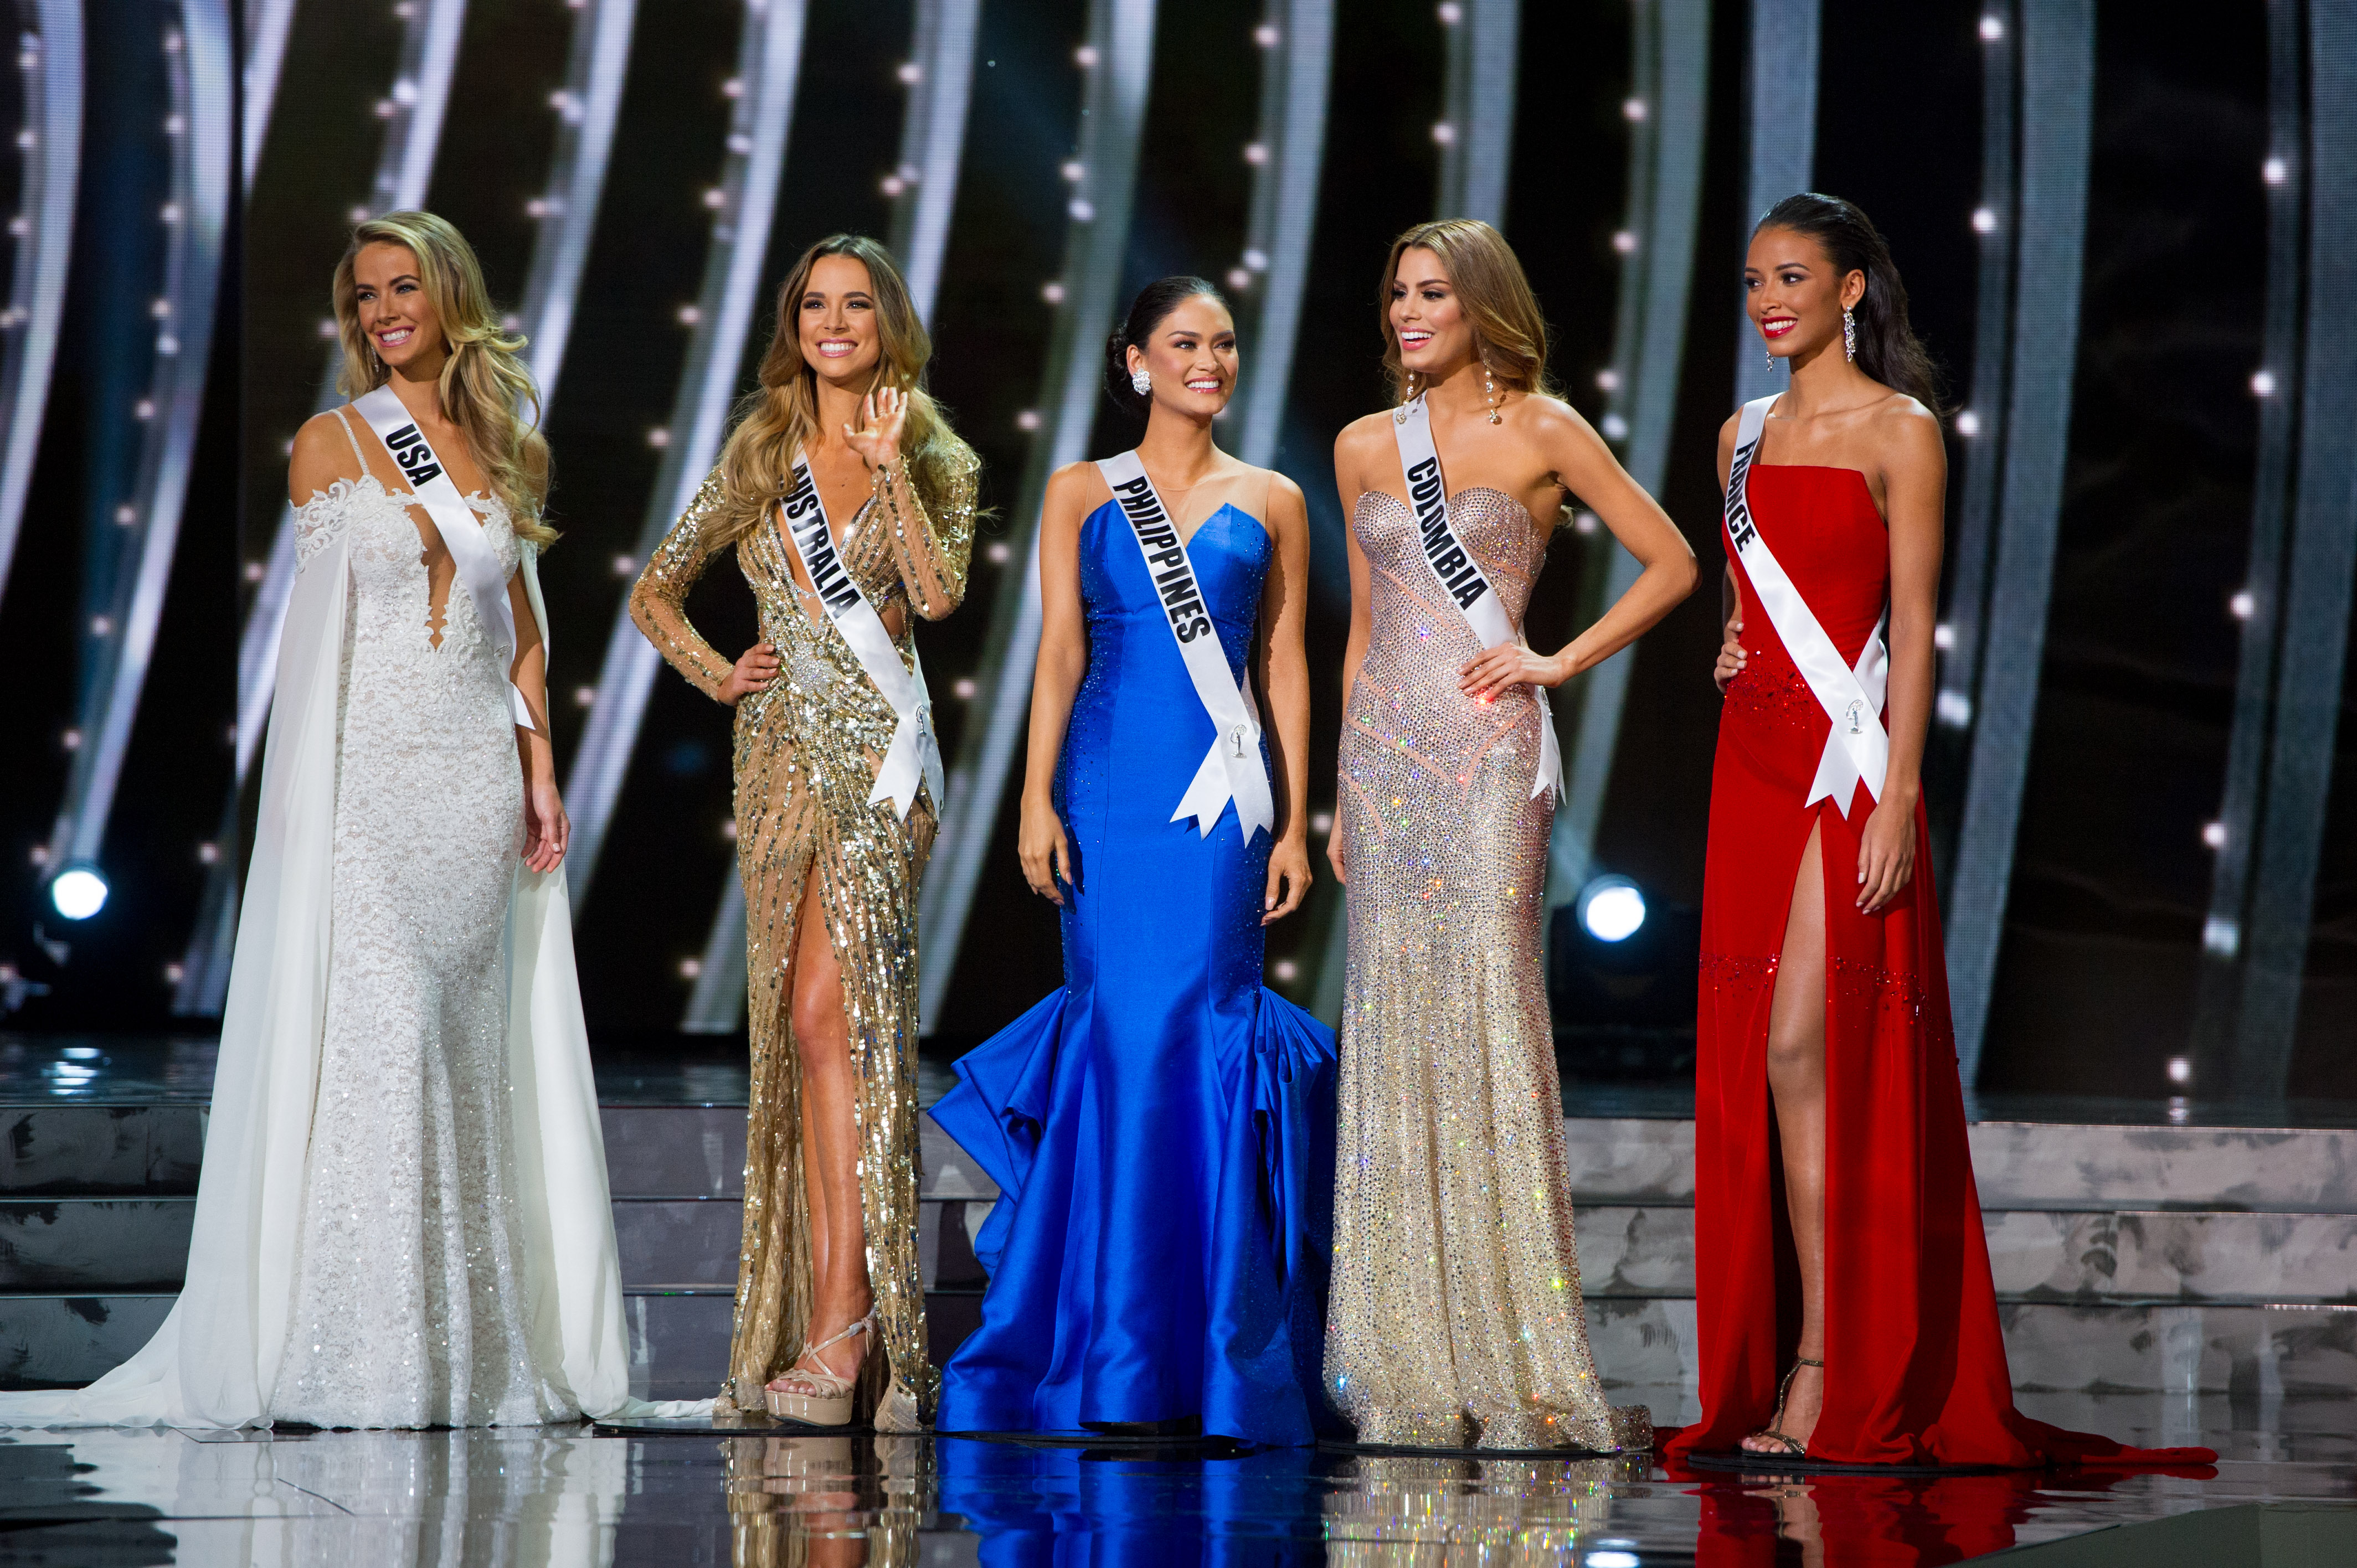 TOP 5. The Miss Universe contestants at the 2015 competition. Photo courtesy of HO/The Miss Universe Organization